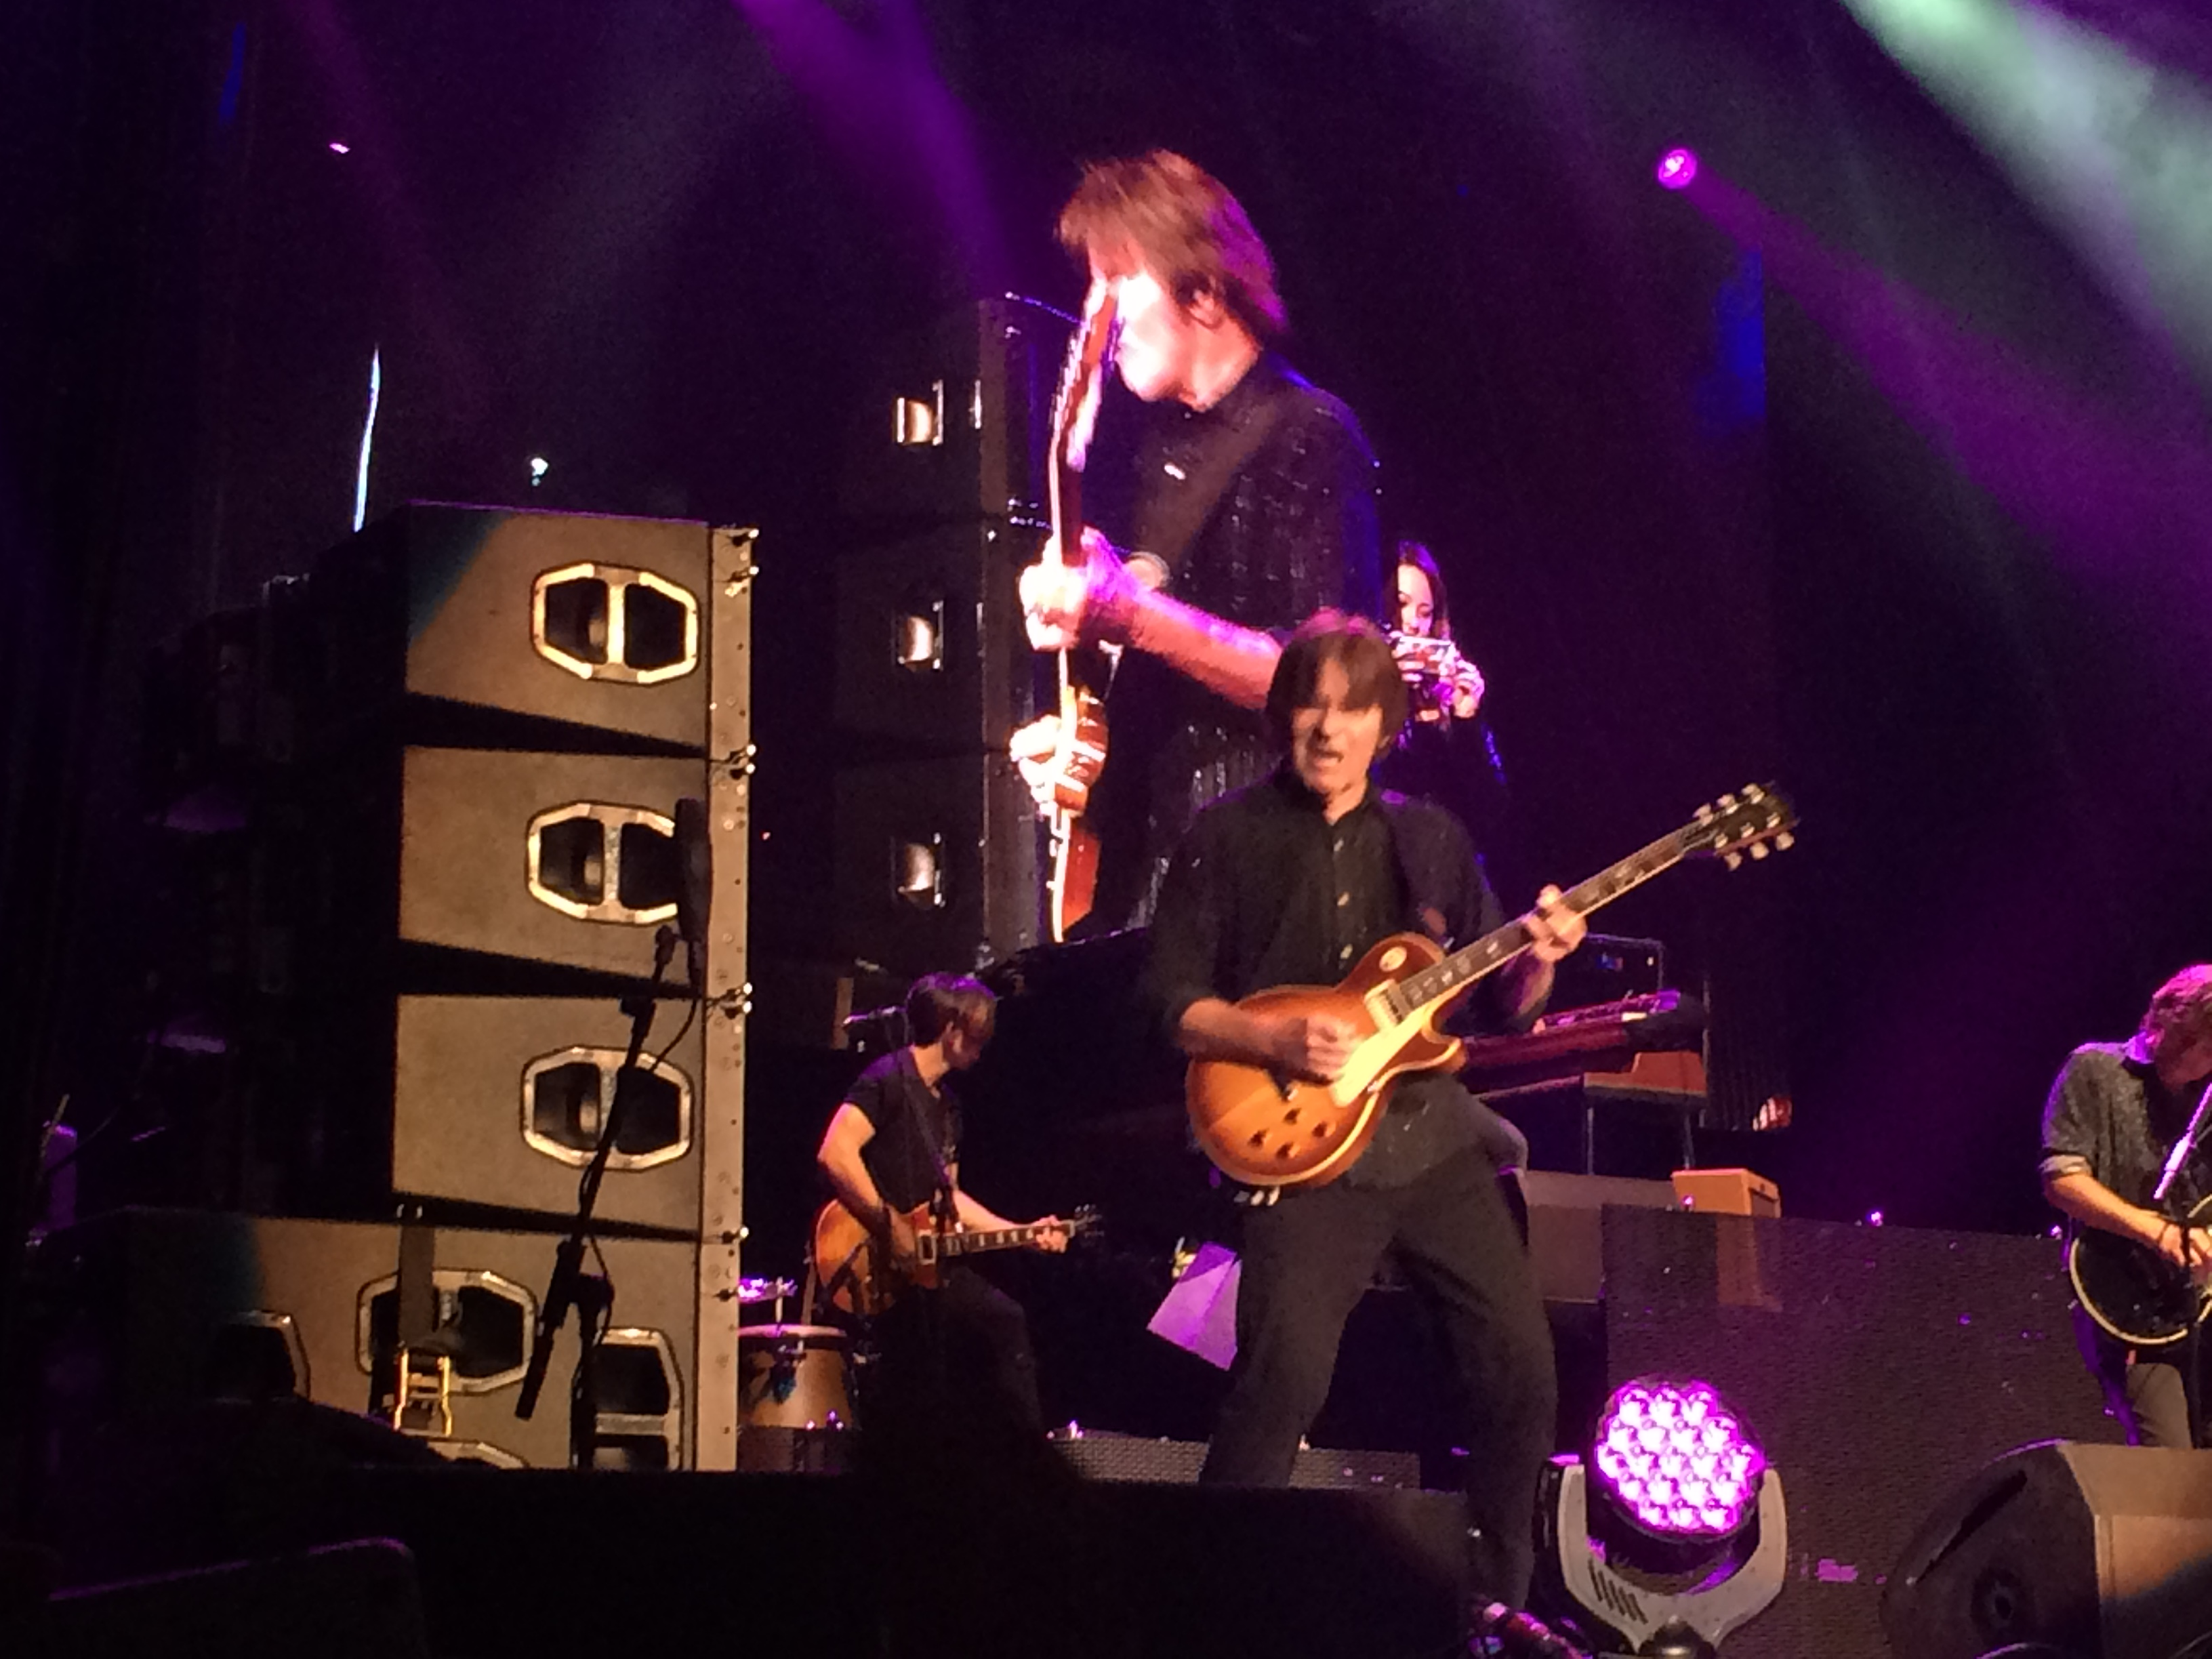 Concertreview: Fogerty's summer of 1969